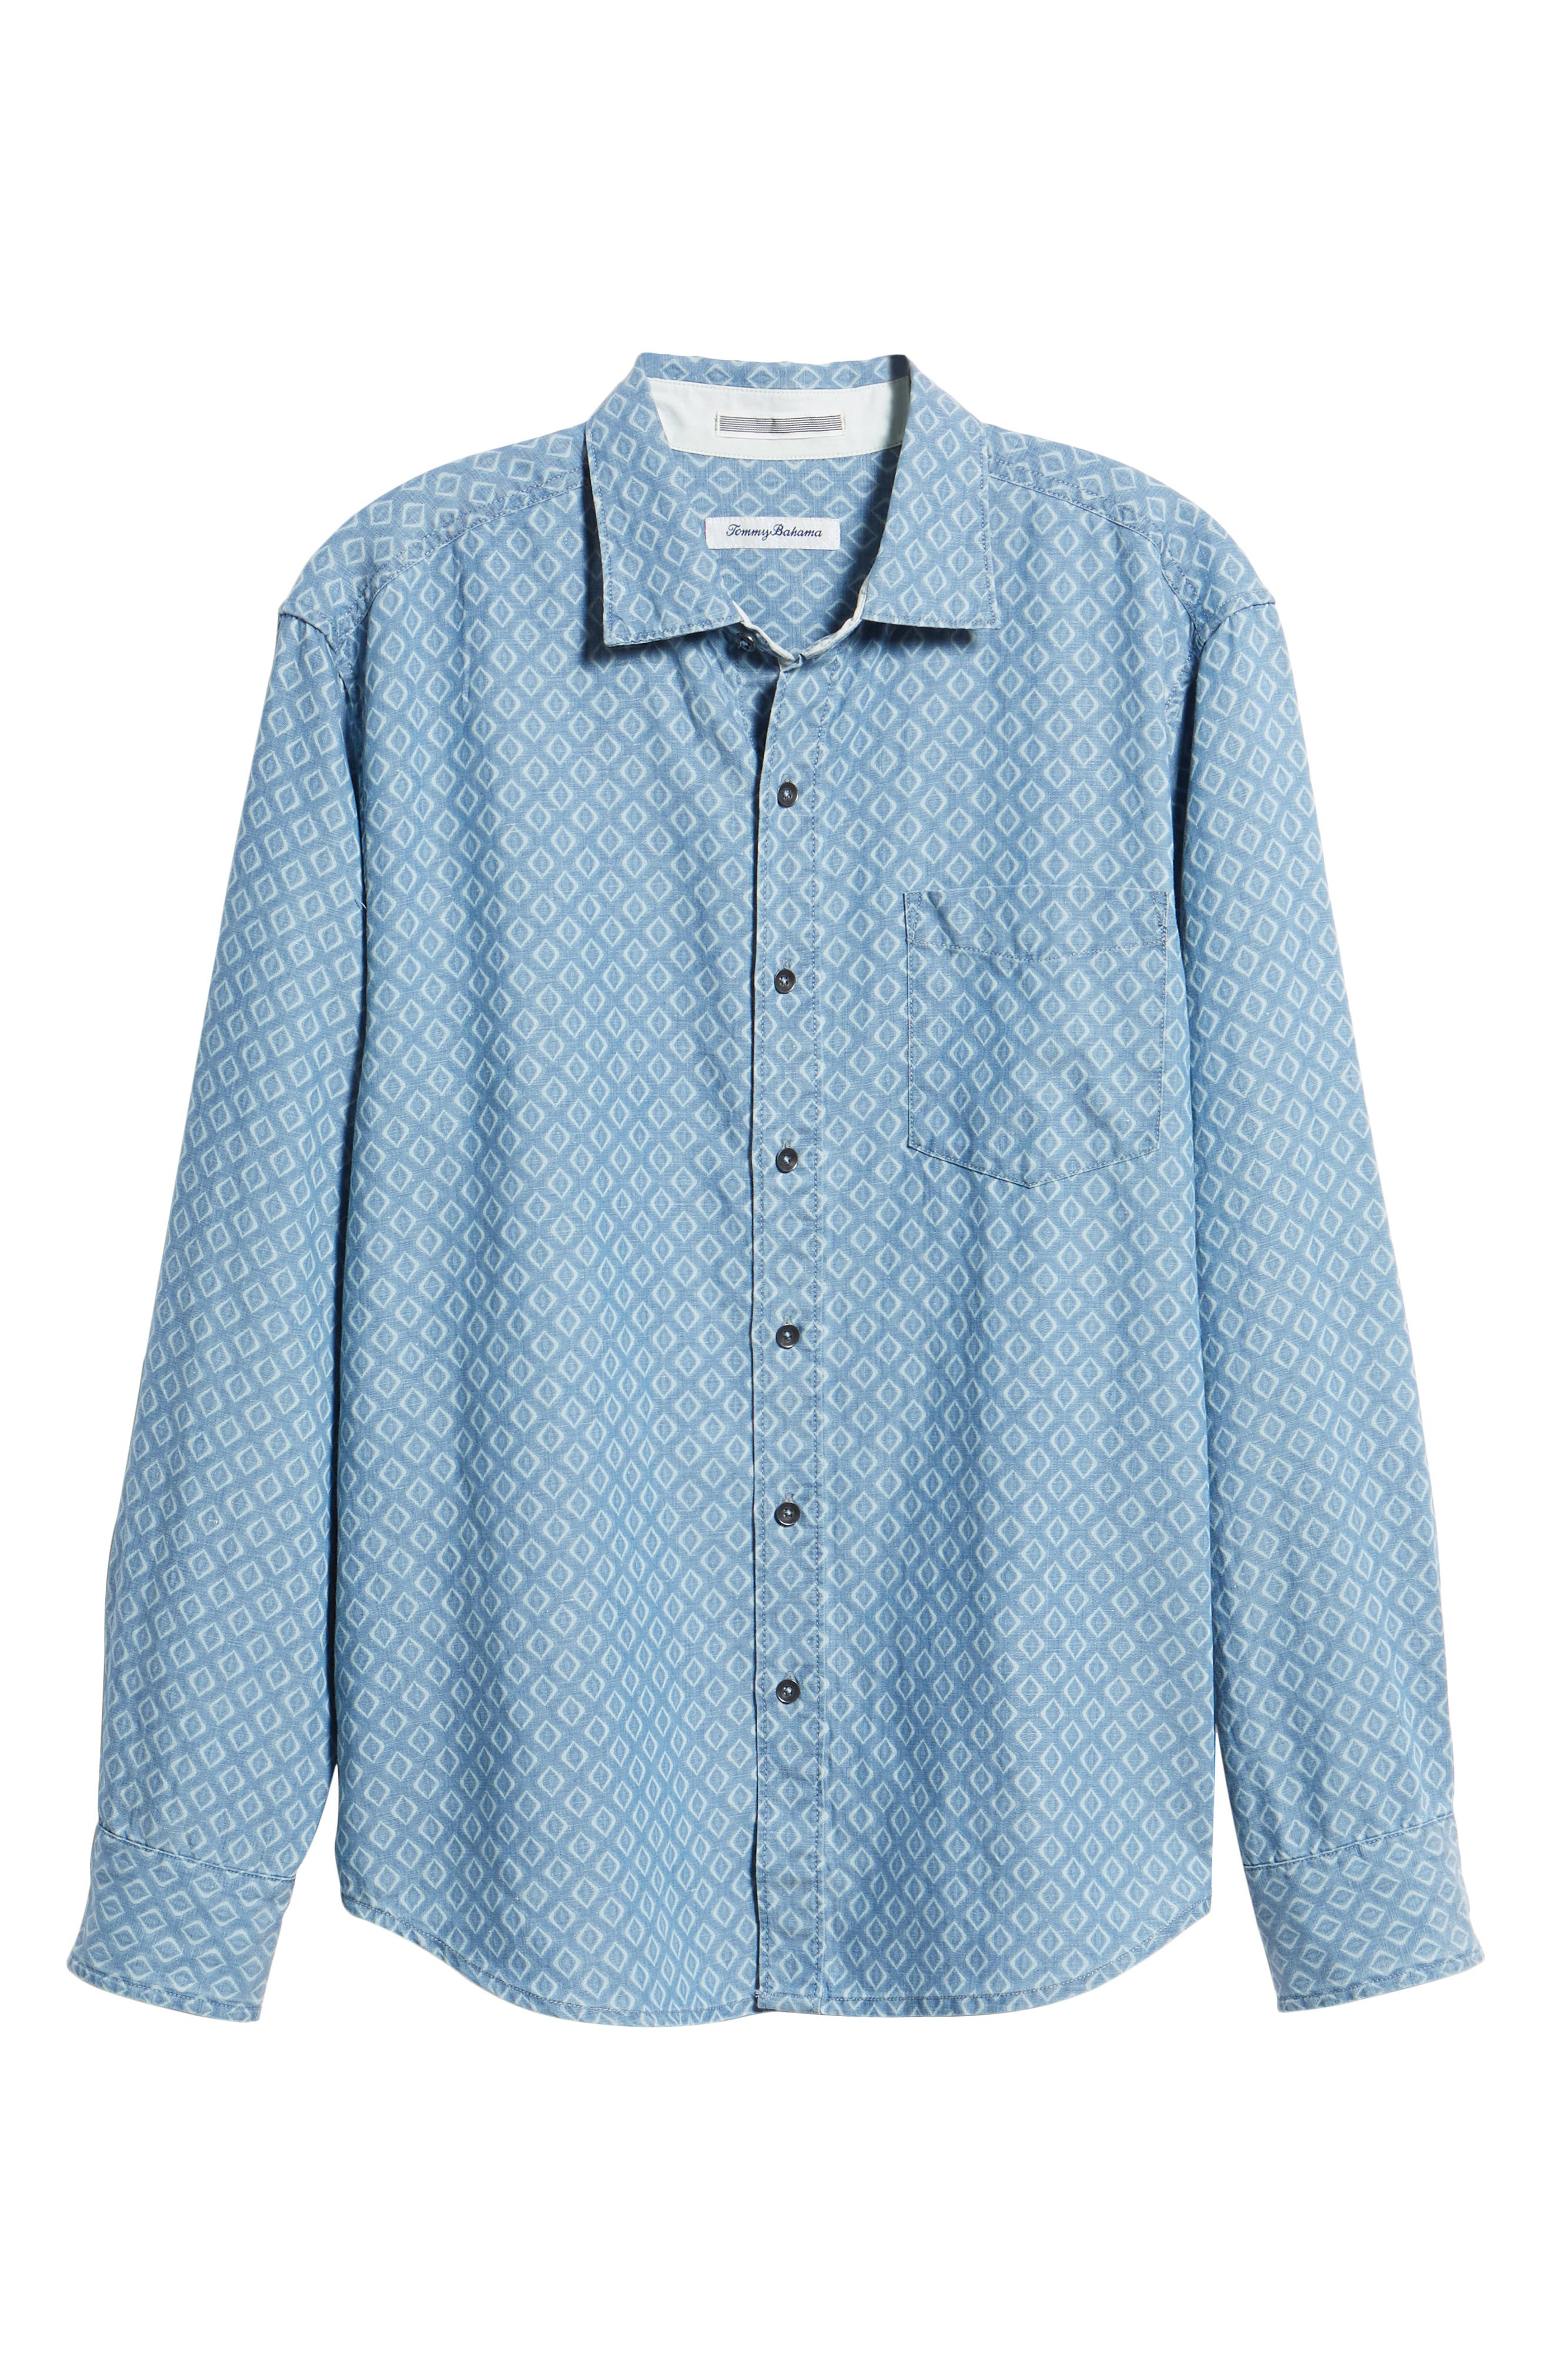 Geo Indigo Regular Fit Sport Shirt,                             Alternate thumbnail 5, color,                             400